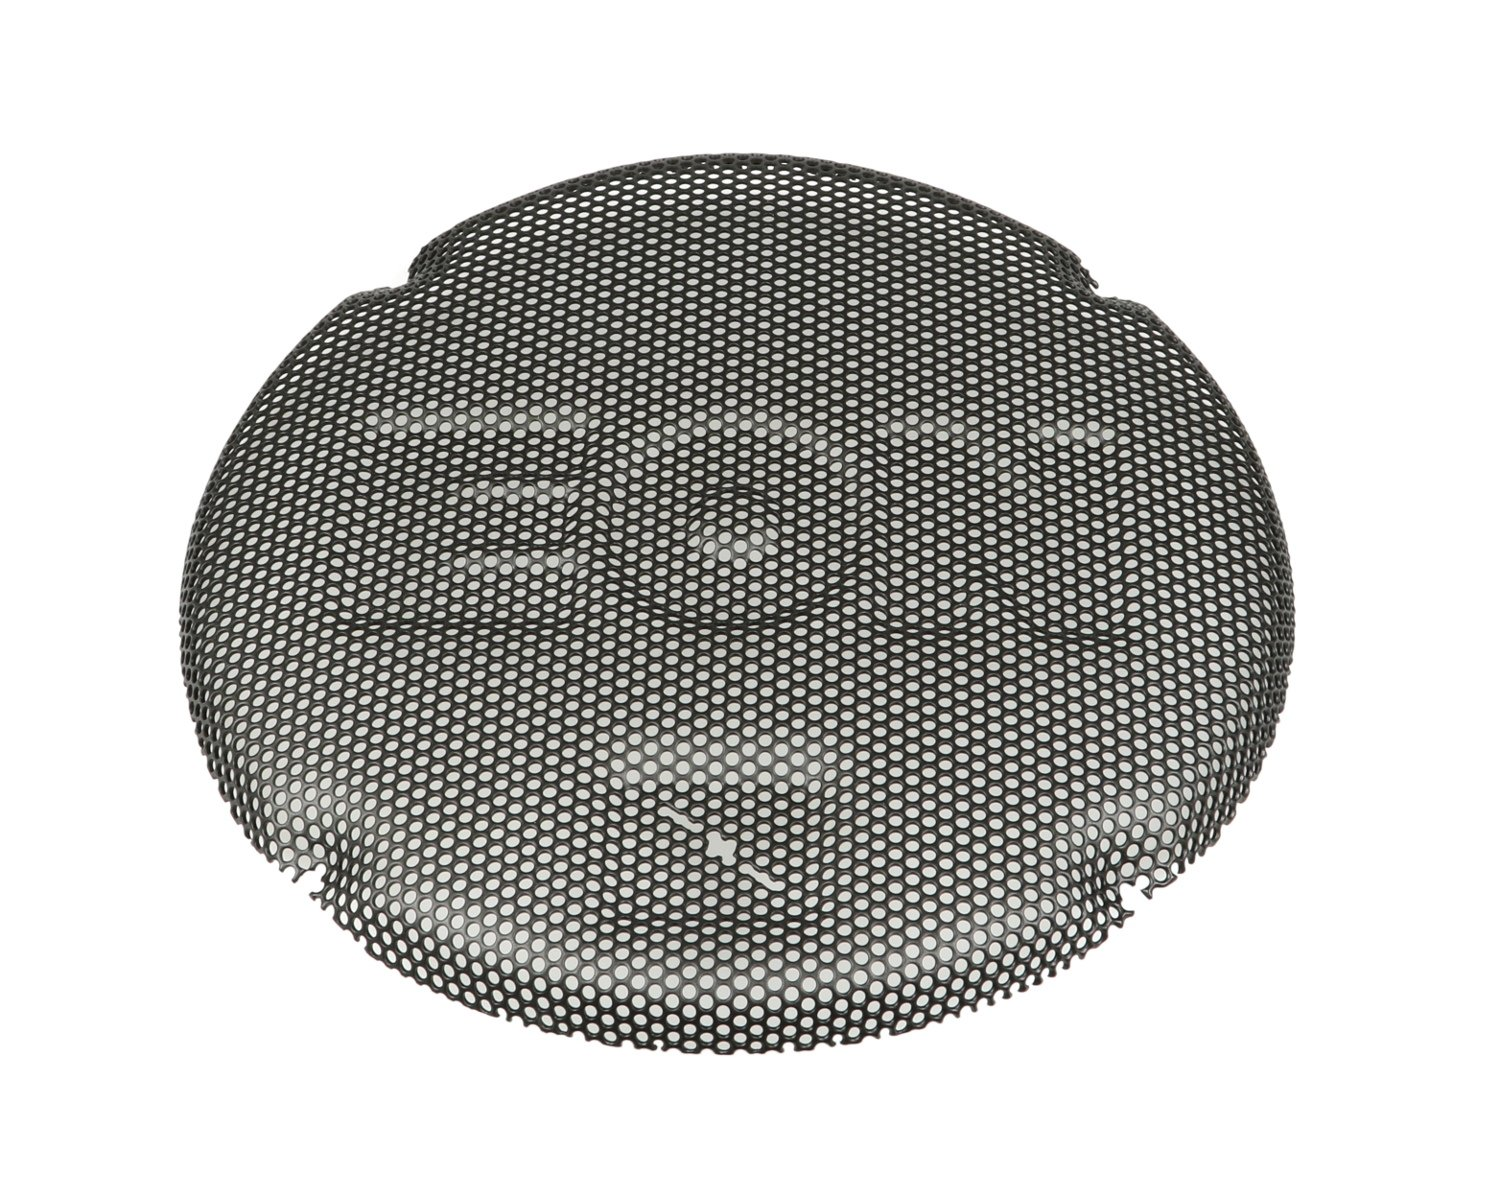 Woofer Grille for EON10 G2